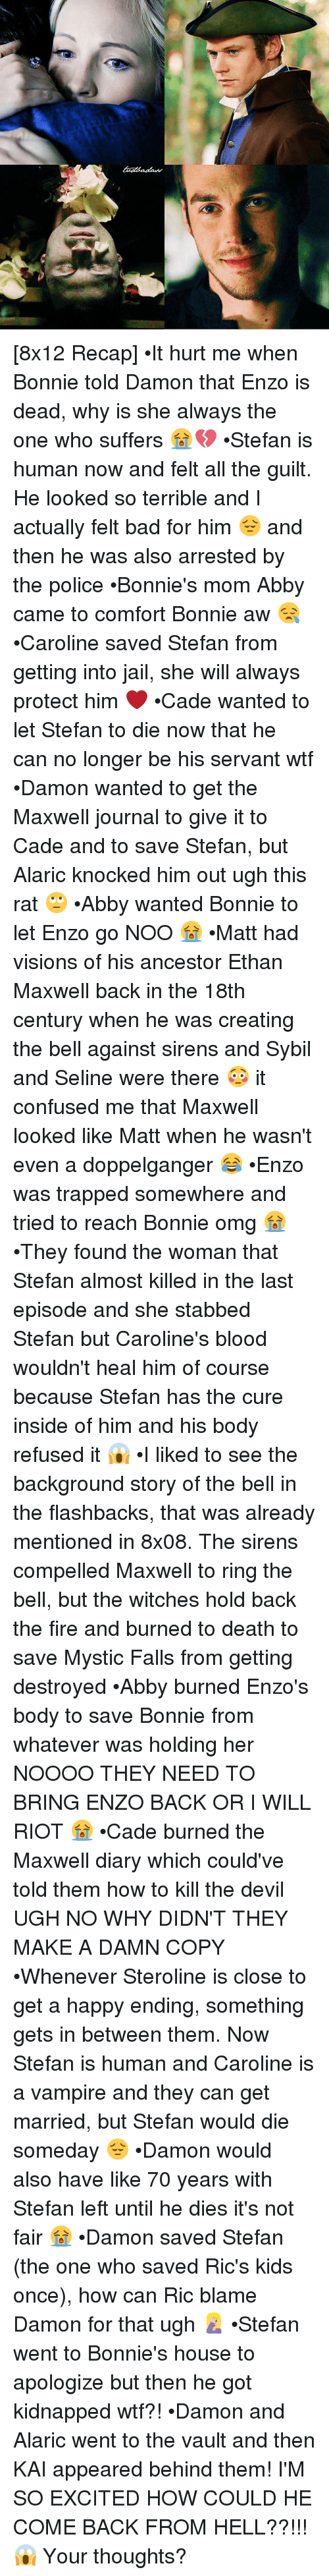 Sirening: [8x12 Recap] •It hurt me when Bonnie told Damon that Enzo is dead, why is she always the one who suffers 😭💔 •Stefan is human now and felt all the guilt. He looked so terrible and I actually felt bad for him 😔 and then he was also arrested by the police •Bonnie's mom Abby came to comfort Bonnie aw 😪 •Caroline saved Stefan from getting into jail, she will always protect him ❤ •Cade wanted to let Stefan to die now that he can no longer be his servant wtf •Damon wanted to get the Maxwell journal to give it to Cade and to save Stefan, but Alaric knocked him out ugh this rat 🙄 •Abby wanted Bonnie to let Enzo go NOO 😭 •Matt had visions of his ancestor Ethan Maxwell back in the 18th century when he was creating the bell against sirens and Sybil and Seline were there 😳 it confused me that Maxwell looked like Matt when he wasn't even a doppelganger 😂 •Enzo was trapped somewhere and tried to reach Bonnie omg 😭 •They found the woman that Stefan almost killed in the last episode and she stabbed Stefan but Caroline's blood wouldn't heal him of course because Stefan has the cure inside of him and his body refused it 😱 •I liked to see the background story of the bell in the flashbacks, that was already mentioned in 8x08. The sirens compelled Maxwell to ring the bell, but the witches hold back the fire and burned to death to save Mystic Falls from getting destroyed •Abby burned Enzo's body to save Bonnie from whatever was holding her NOOOO THEY NEED TO BRING ENZO BACK OR I WILL RIOT 😭 •Cade burned the Maxwell diary which could've told them how to kill the devil UGH NO WHY DIDN'T THEY MAKE A DAMN COPY •Whenever Steroline is close to get a happy ending, something gets in between them. Now Stefan is human and Caroline is a vampire and they can get married, but Stefan would die someday 😔 •Damon would also have like 70 years with Stefan left until he dies it's not fair 😭 •Damon saved Stefan (the one who saved Ric's kids once), how can Ric blame Damon for that ugh 🤦🏼‍♀️ •Stefan went to Bonnie's house to apologize but then he got kidnapped wtf?! •Damon and Alaric went to the vault and then KAI appeared behind them! I'M SO EXCITED HOW COULD HE COME BACK FROM HELL??!!! 😱 Your thoughts?